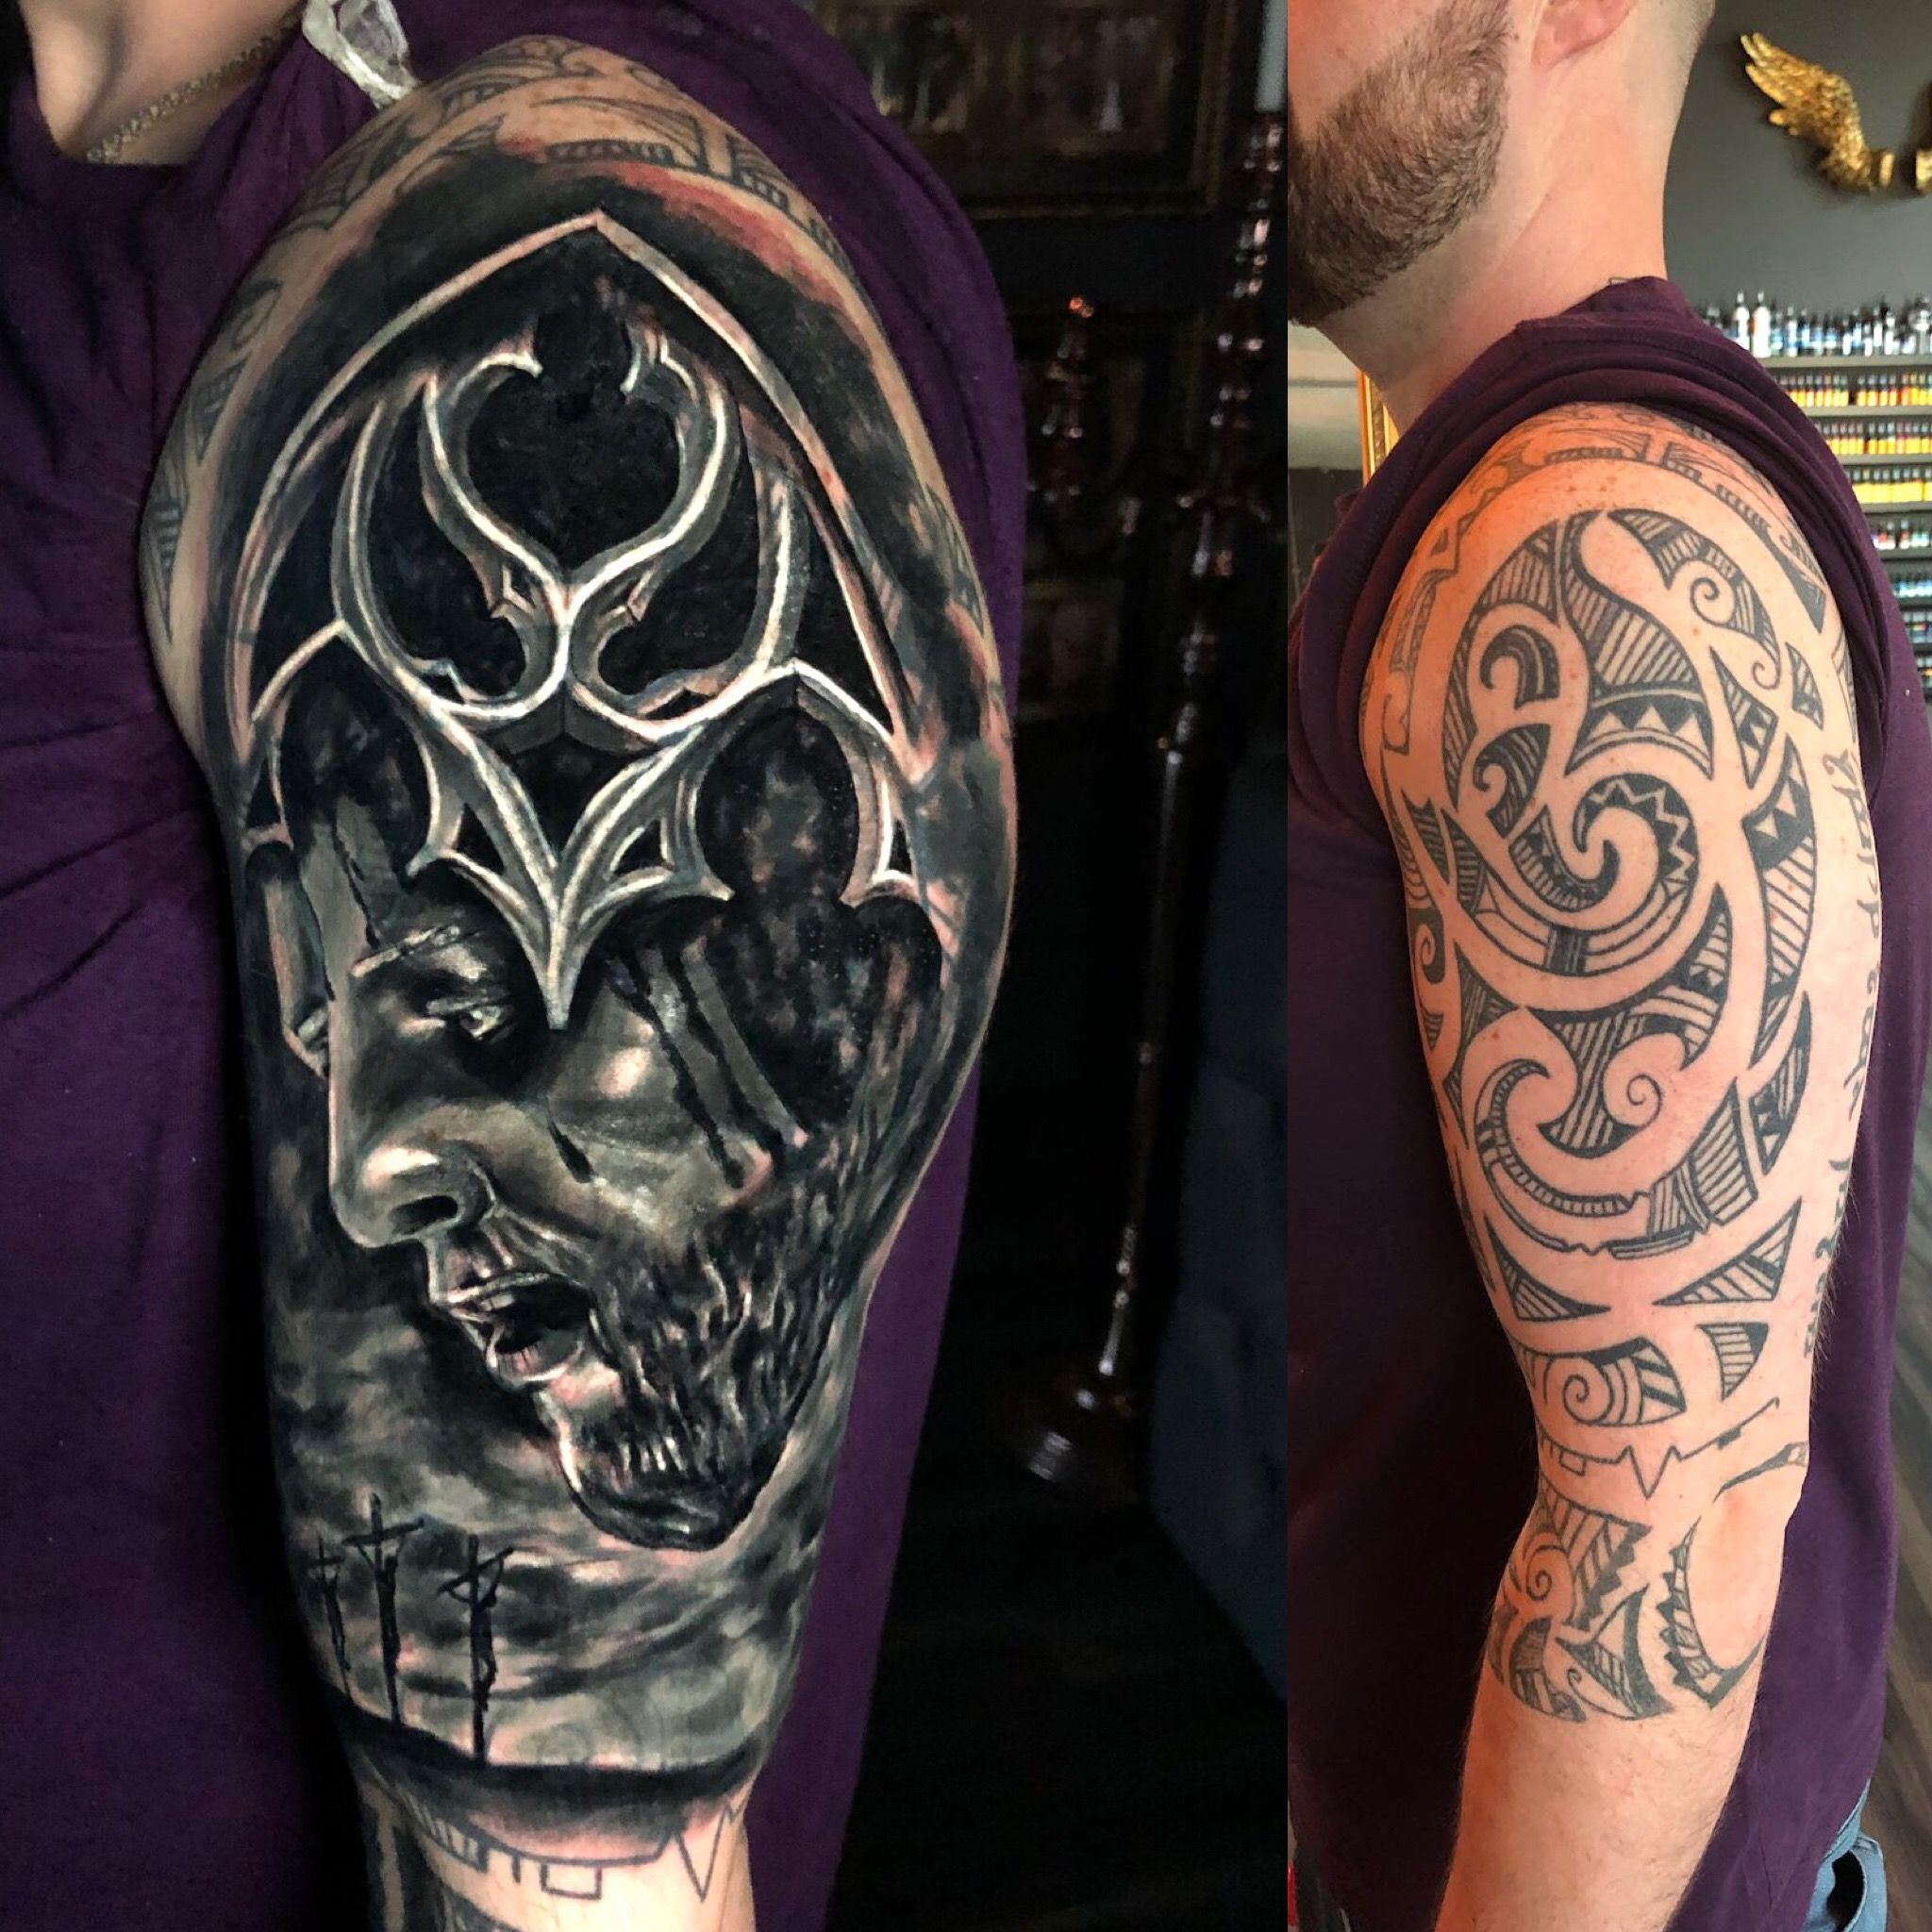 Cover up tattoo by Seb. Limited availability at Redemption